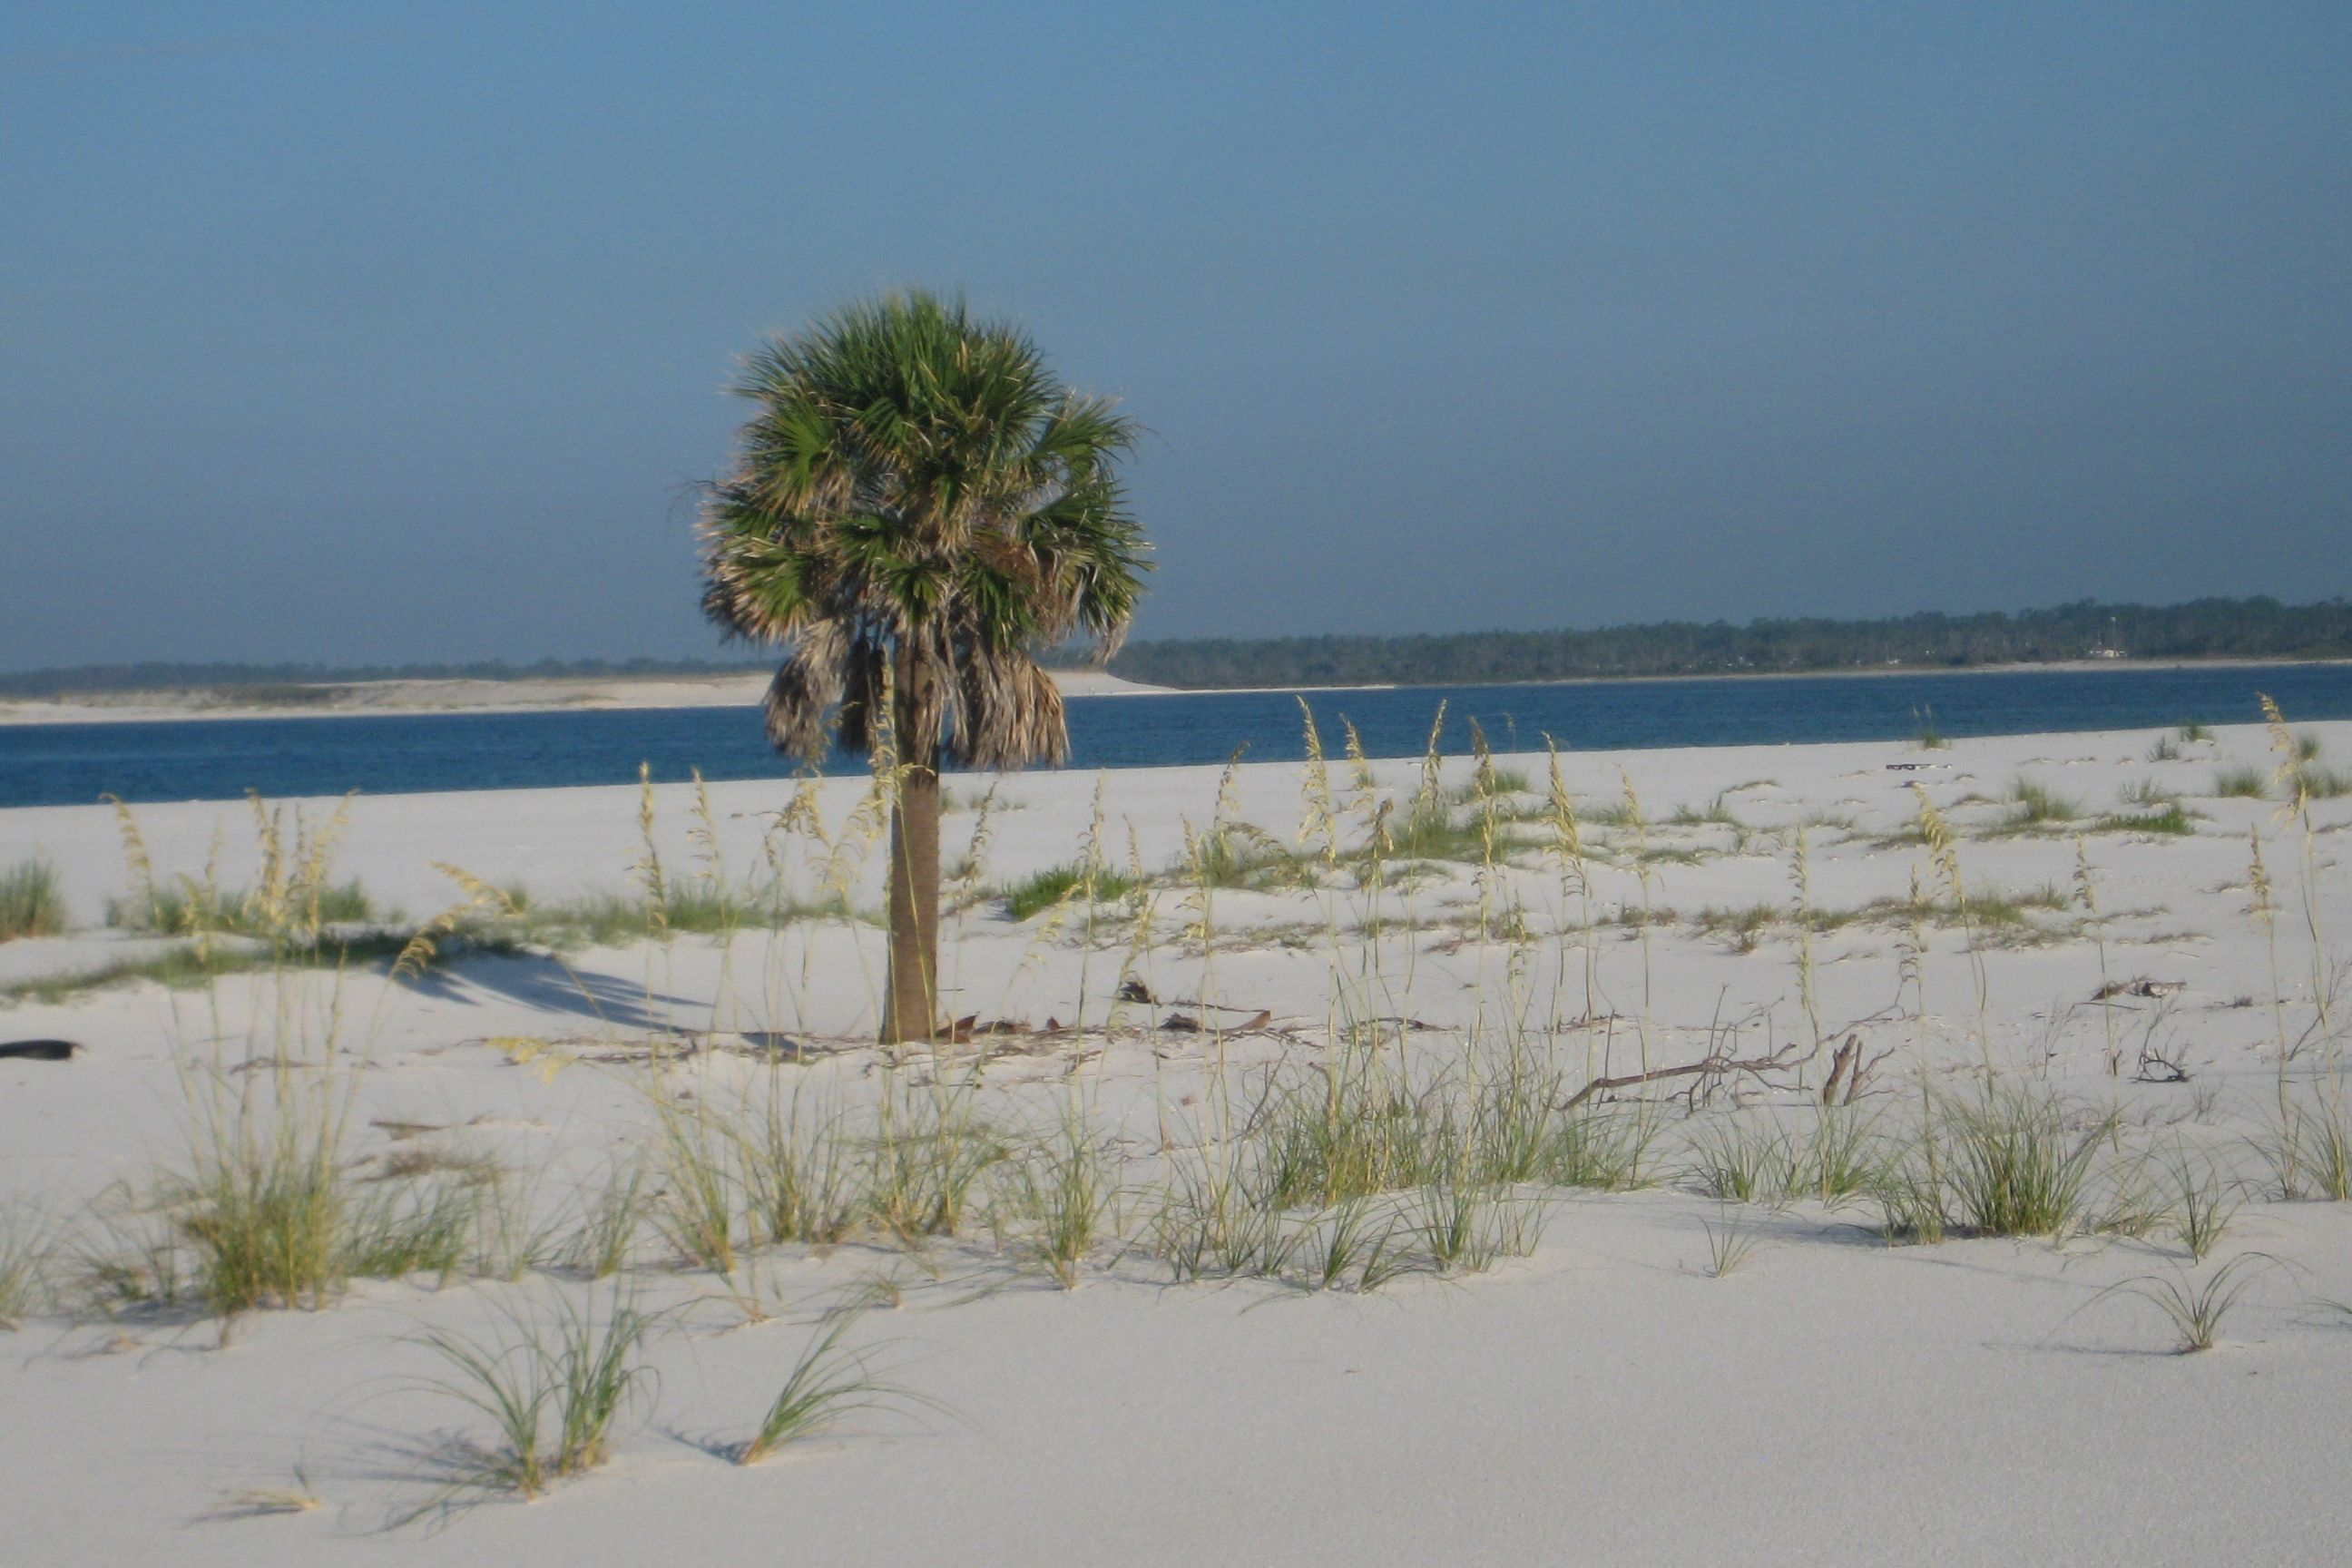 Small palm stands alone on a beach on Santa Rosa Island in Florida. The sea is in the background.